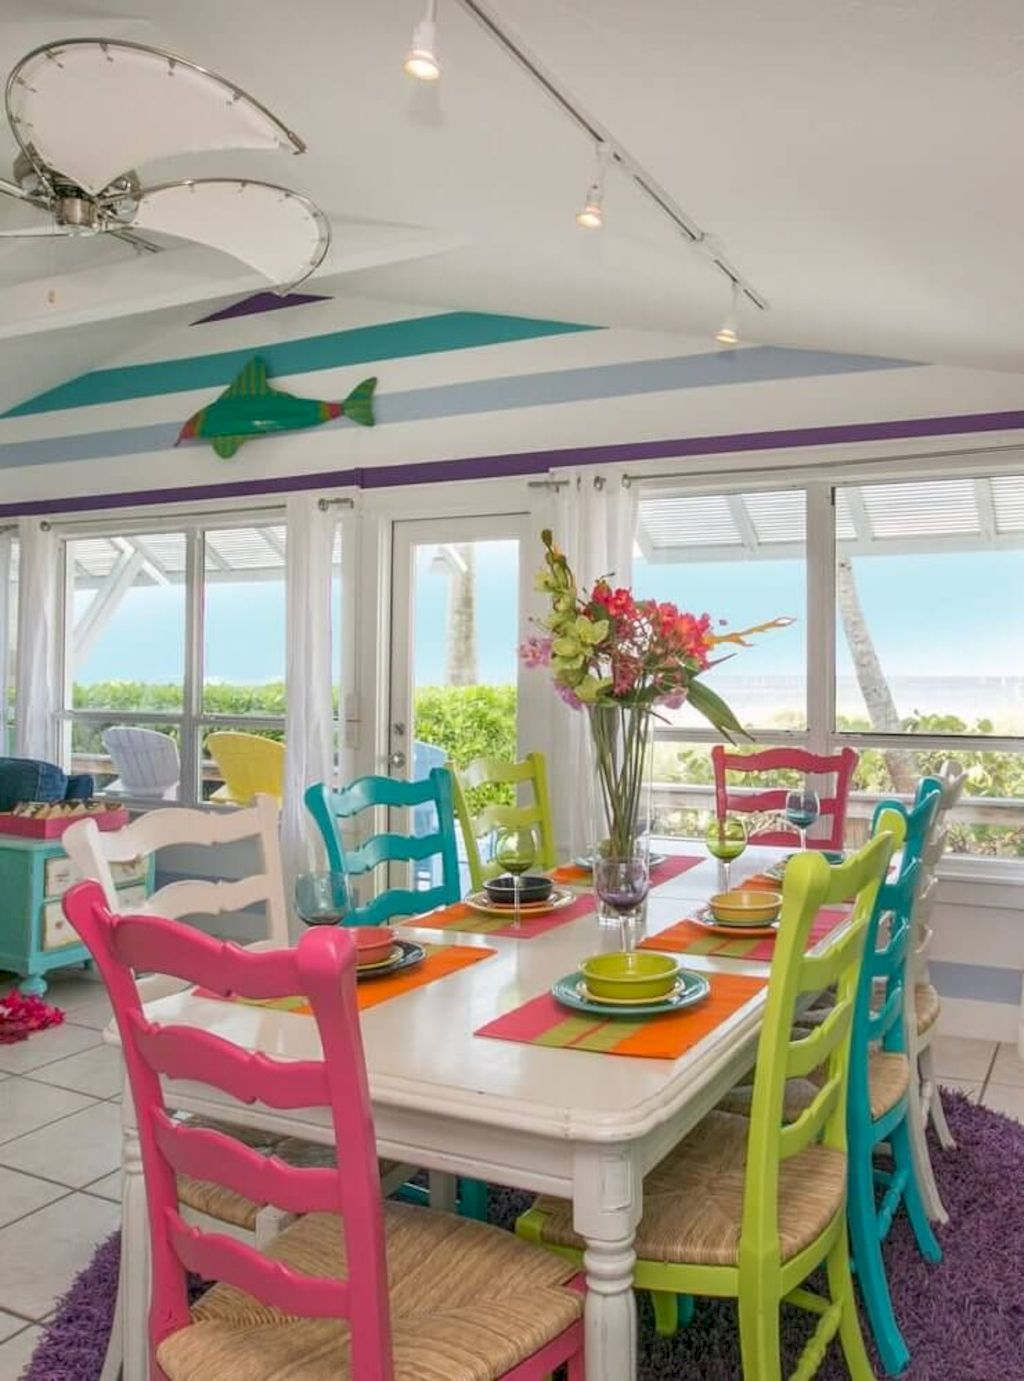 Beach home dining room style giving a fresh vibe among inviting recreational interior update Image 1